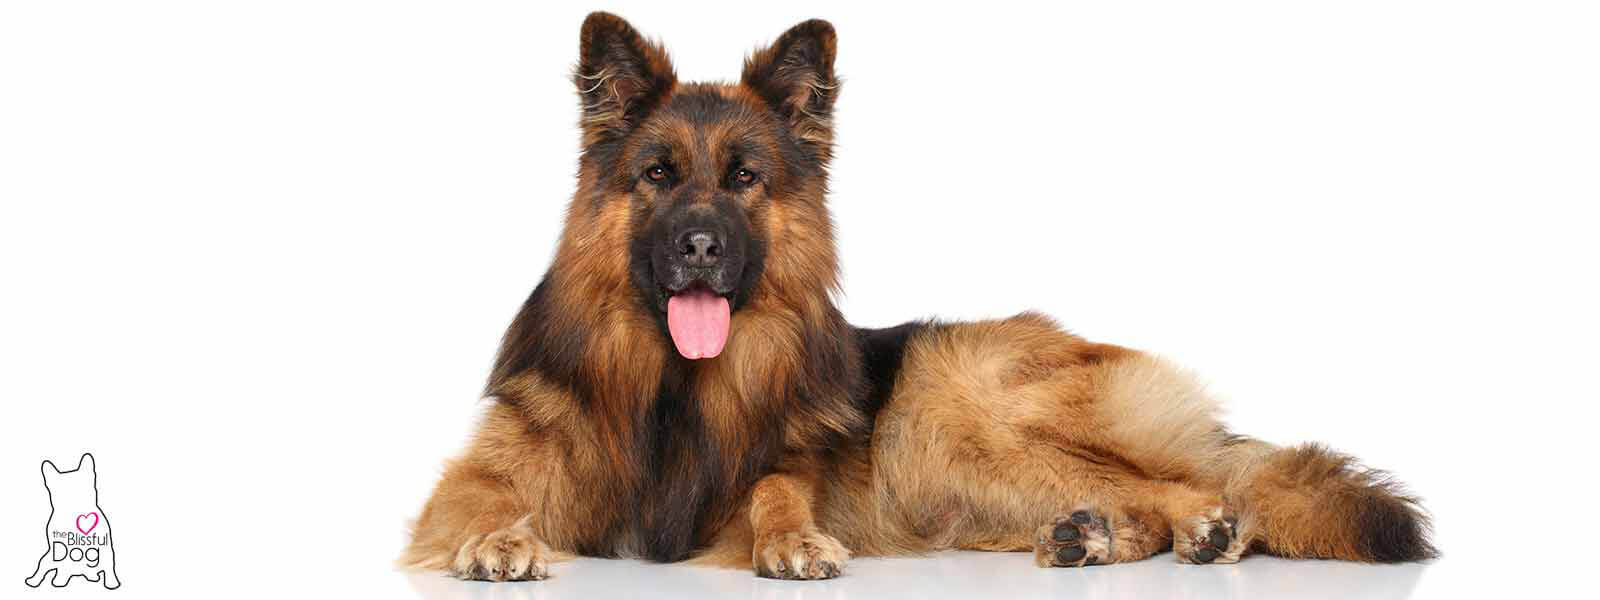 Cute Puppies Does Your German Shepherd Have A Dry Or Even Cracked German Shepherd Nose Your Rough Nose German Shepherd S Cartoon German Shepherd S bark post German Shepherd Pictures